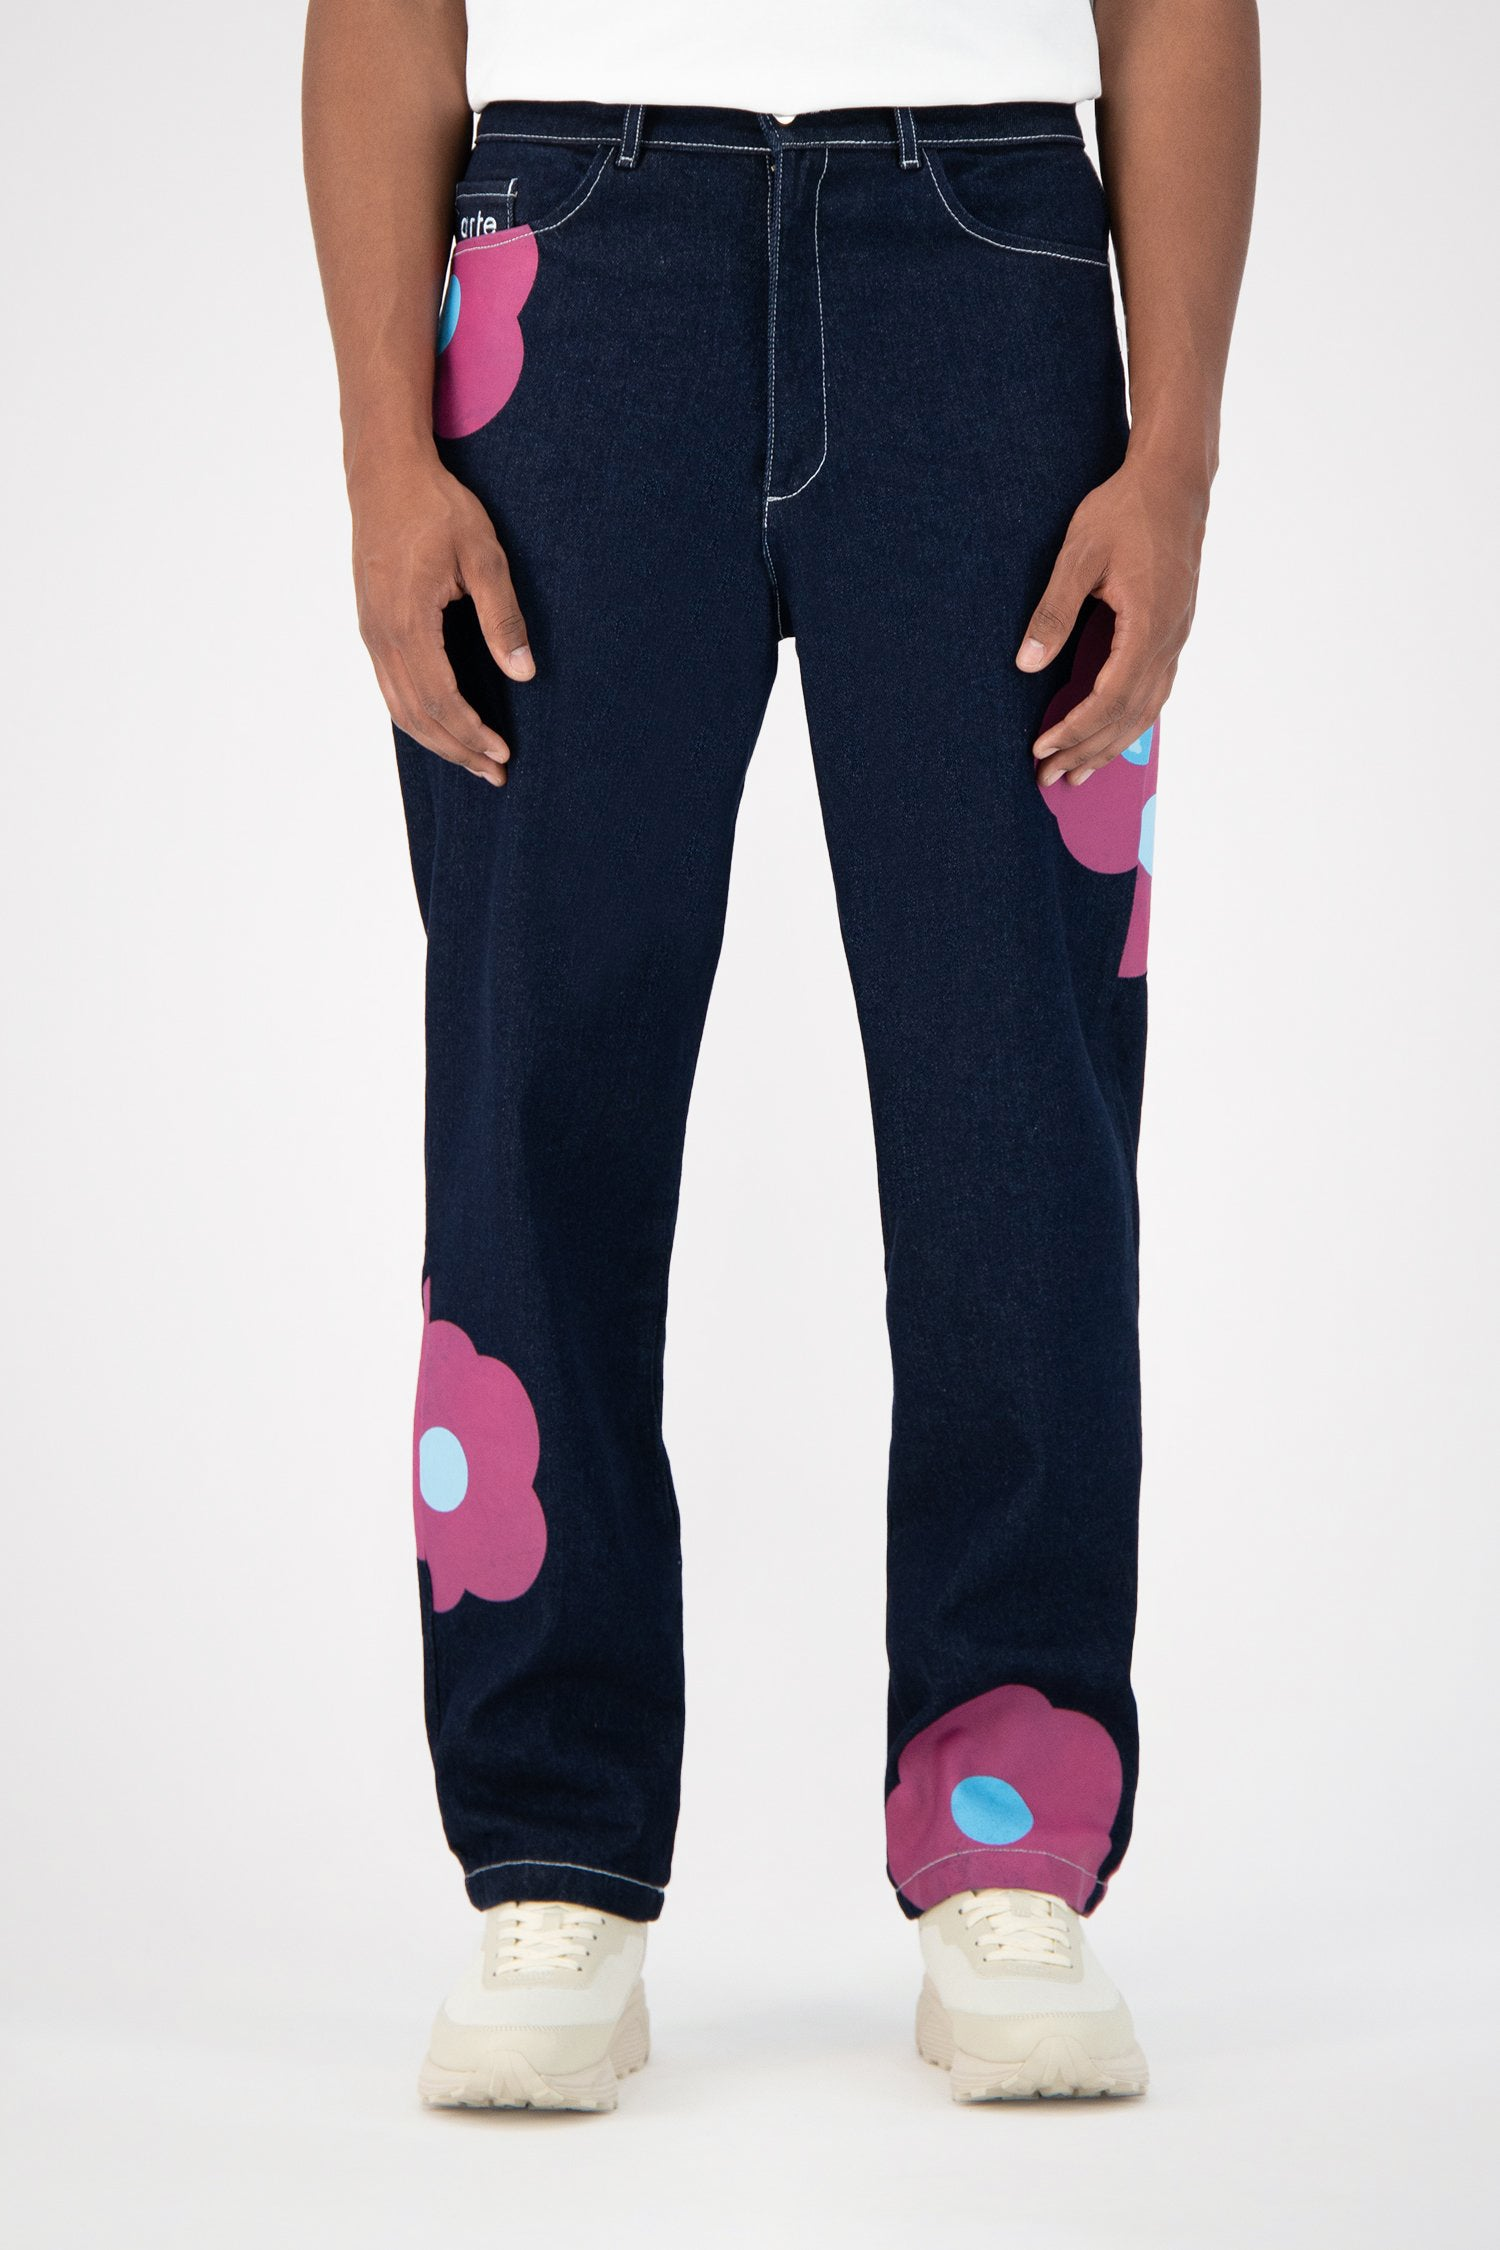 Penny Rosa Jeans - Navy/Pink